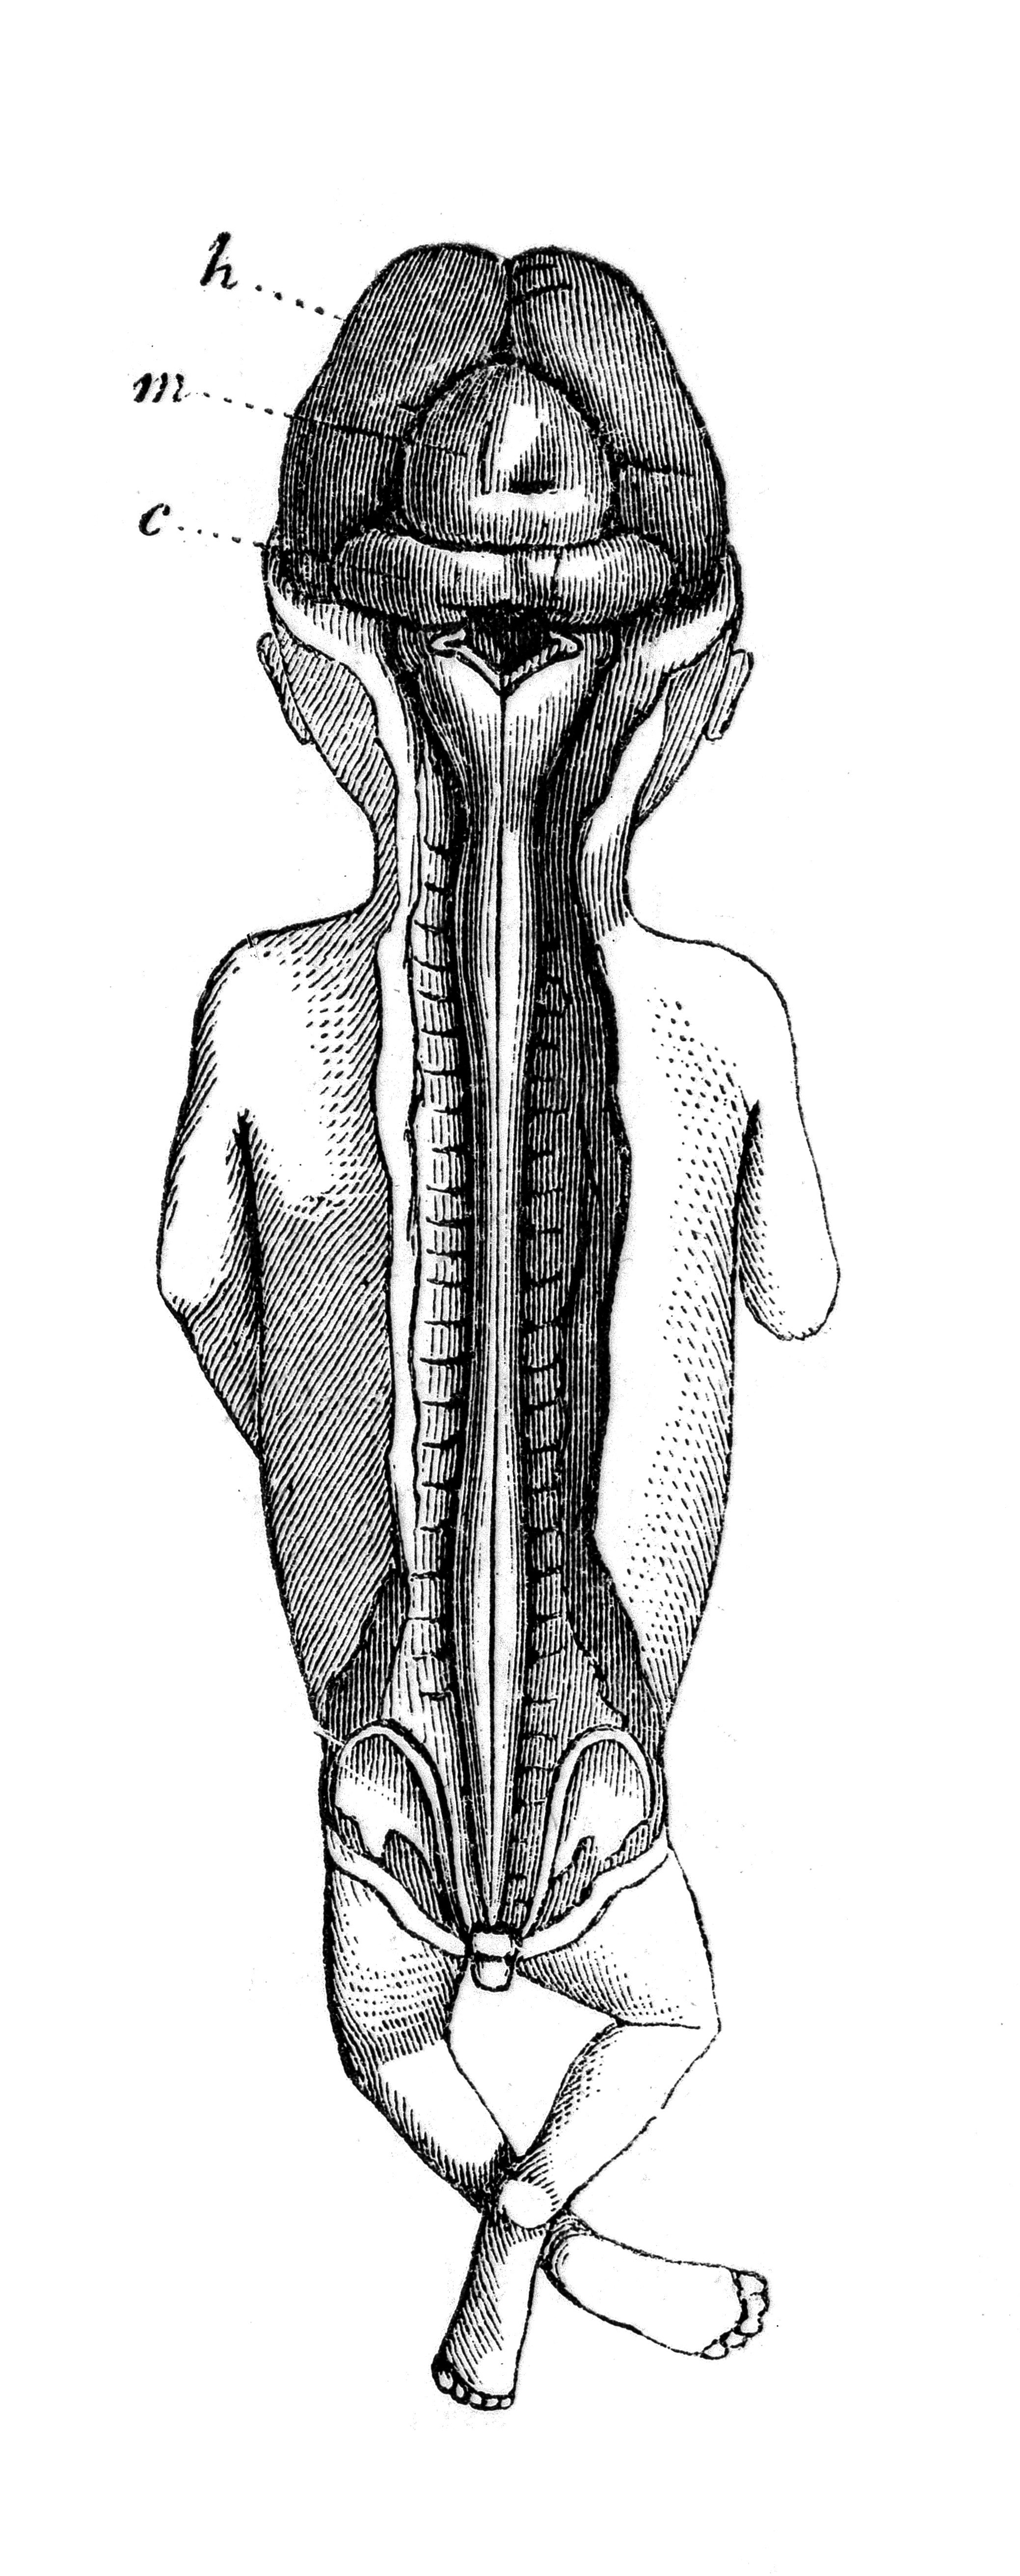 File:Embryo at three months. Brain and spinal cord exposed. Wellcome ...